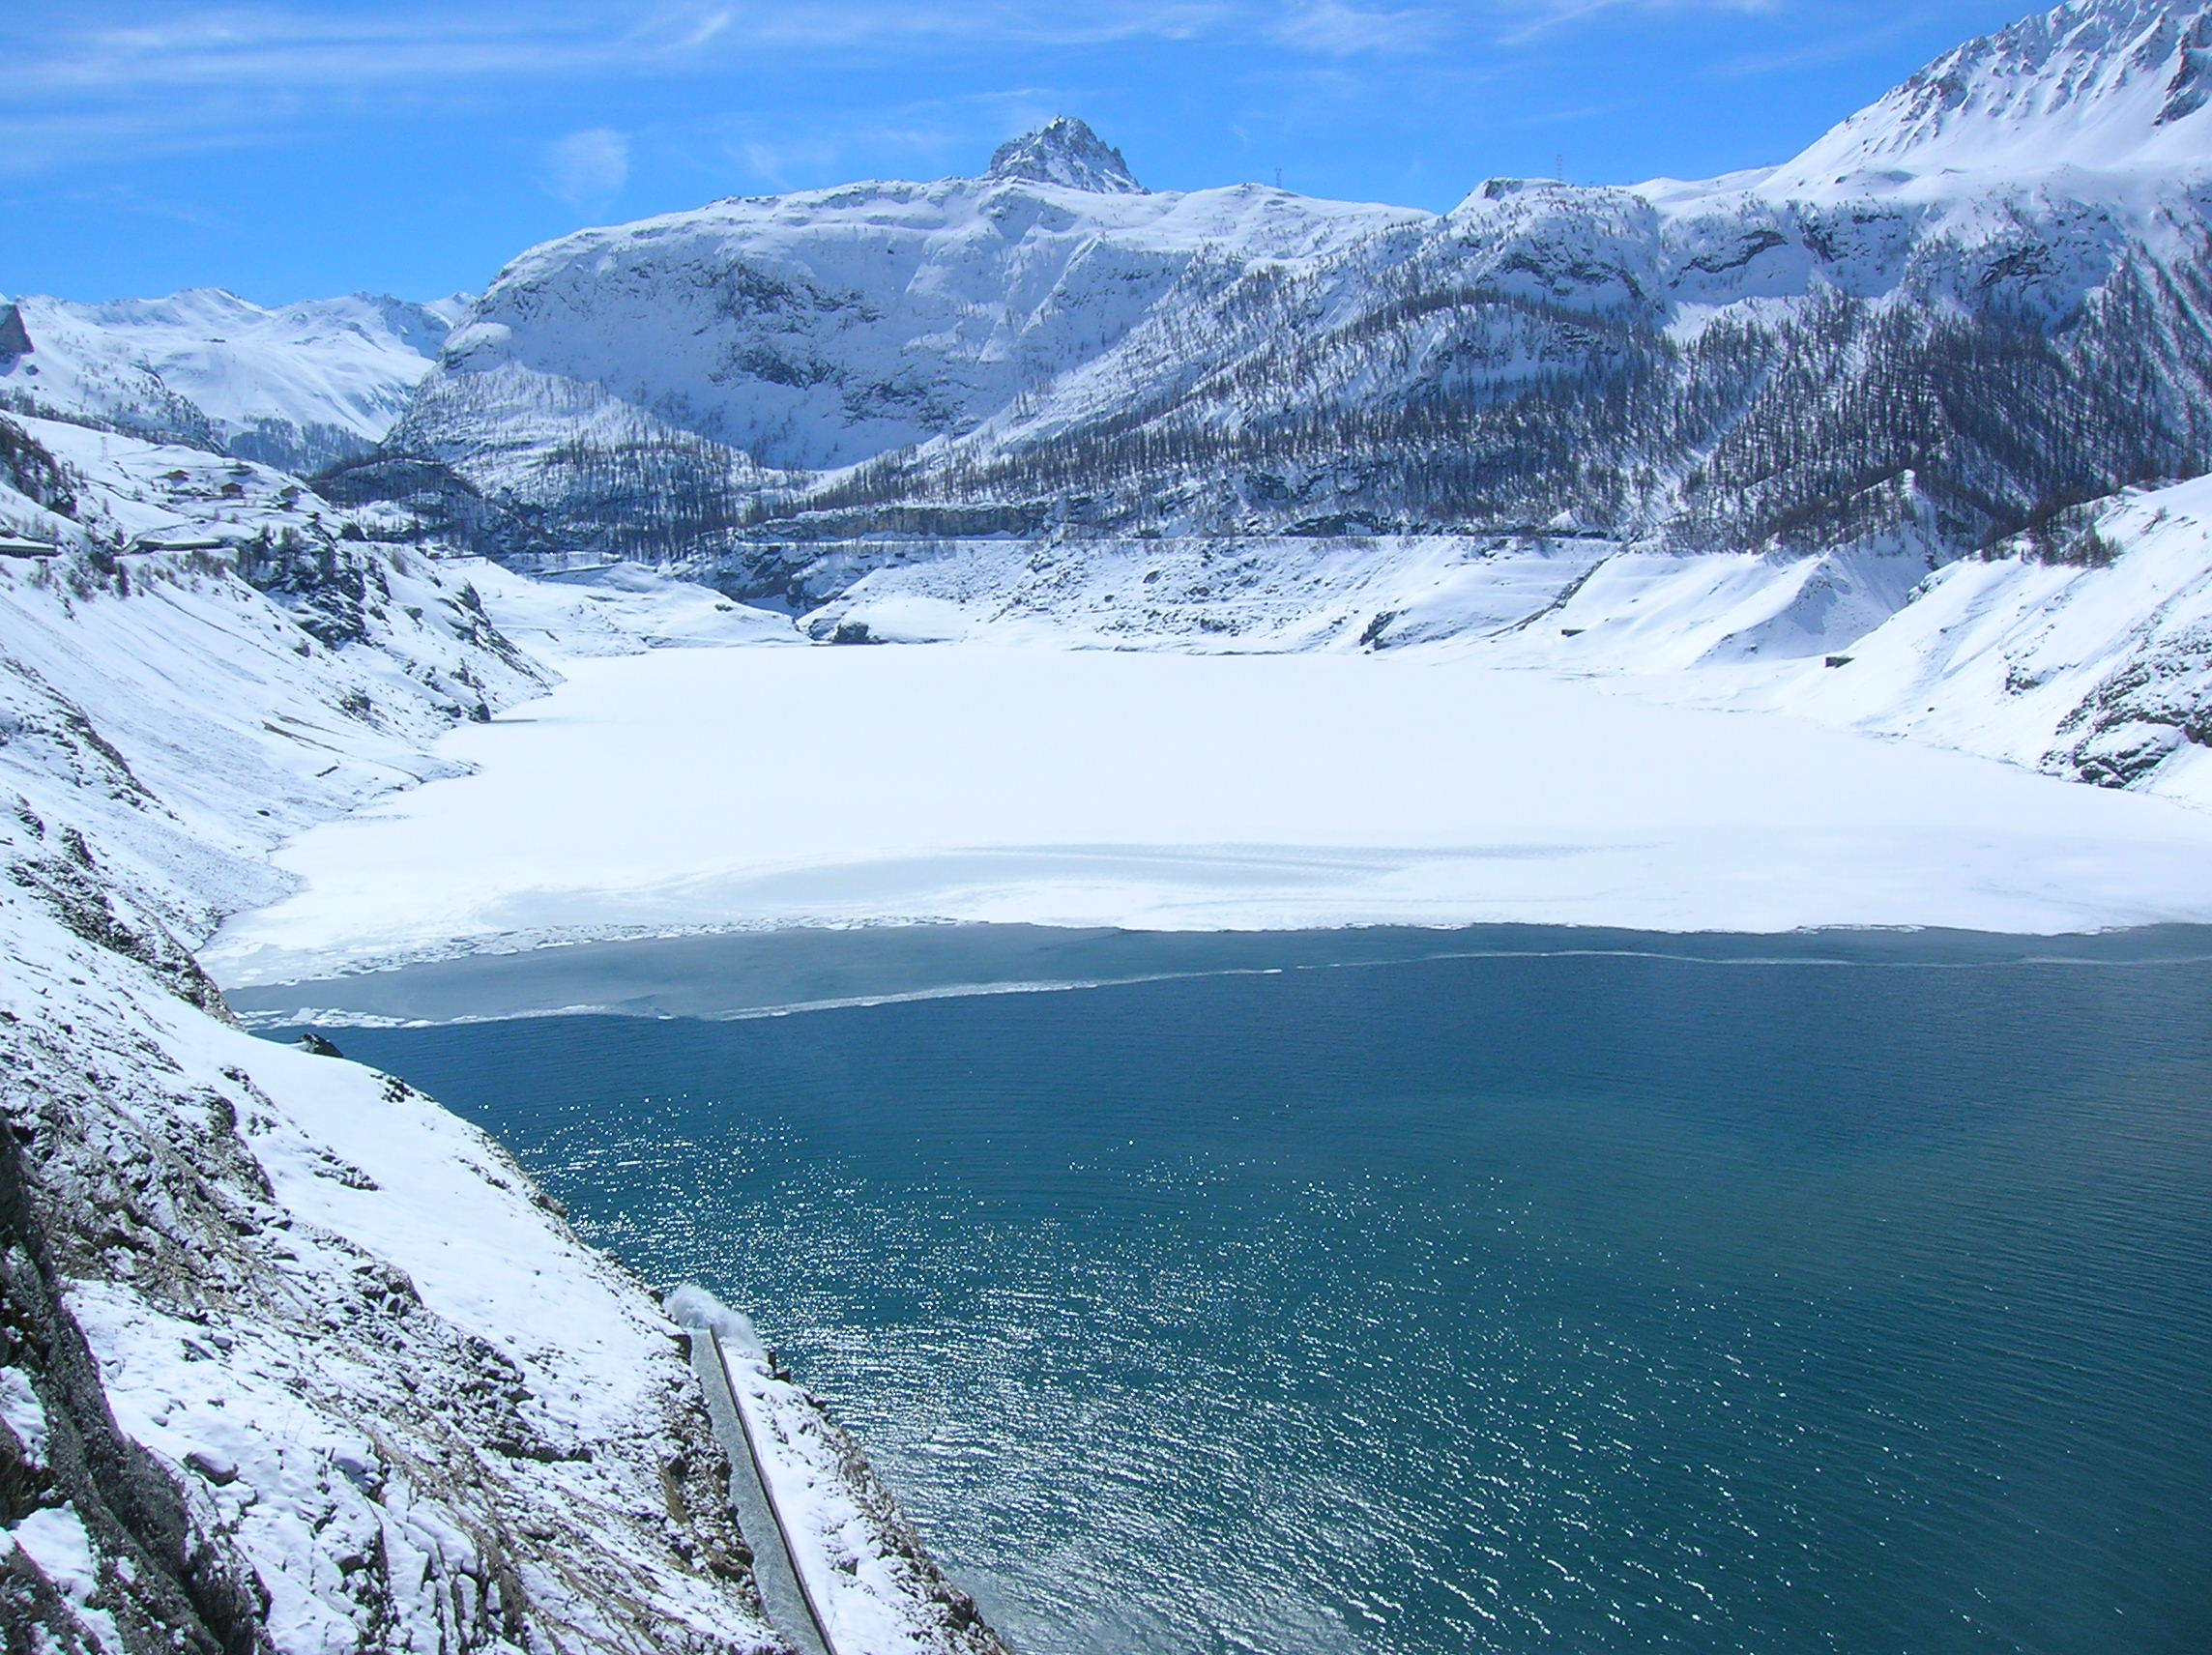 Lake ski resort Tignes France wallpapers and images   wallpapers 2288x1712